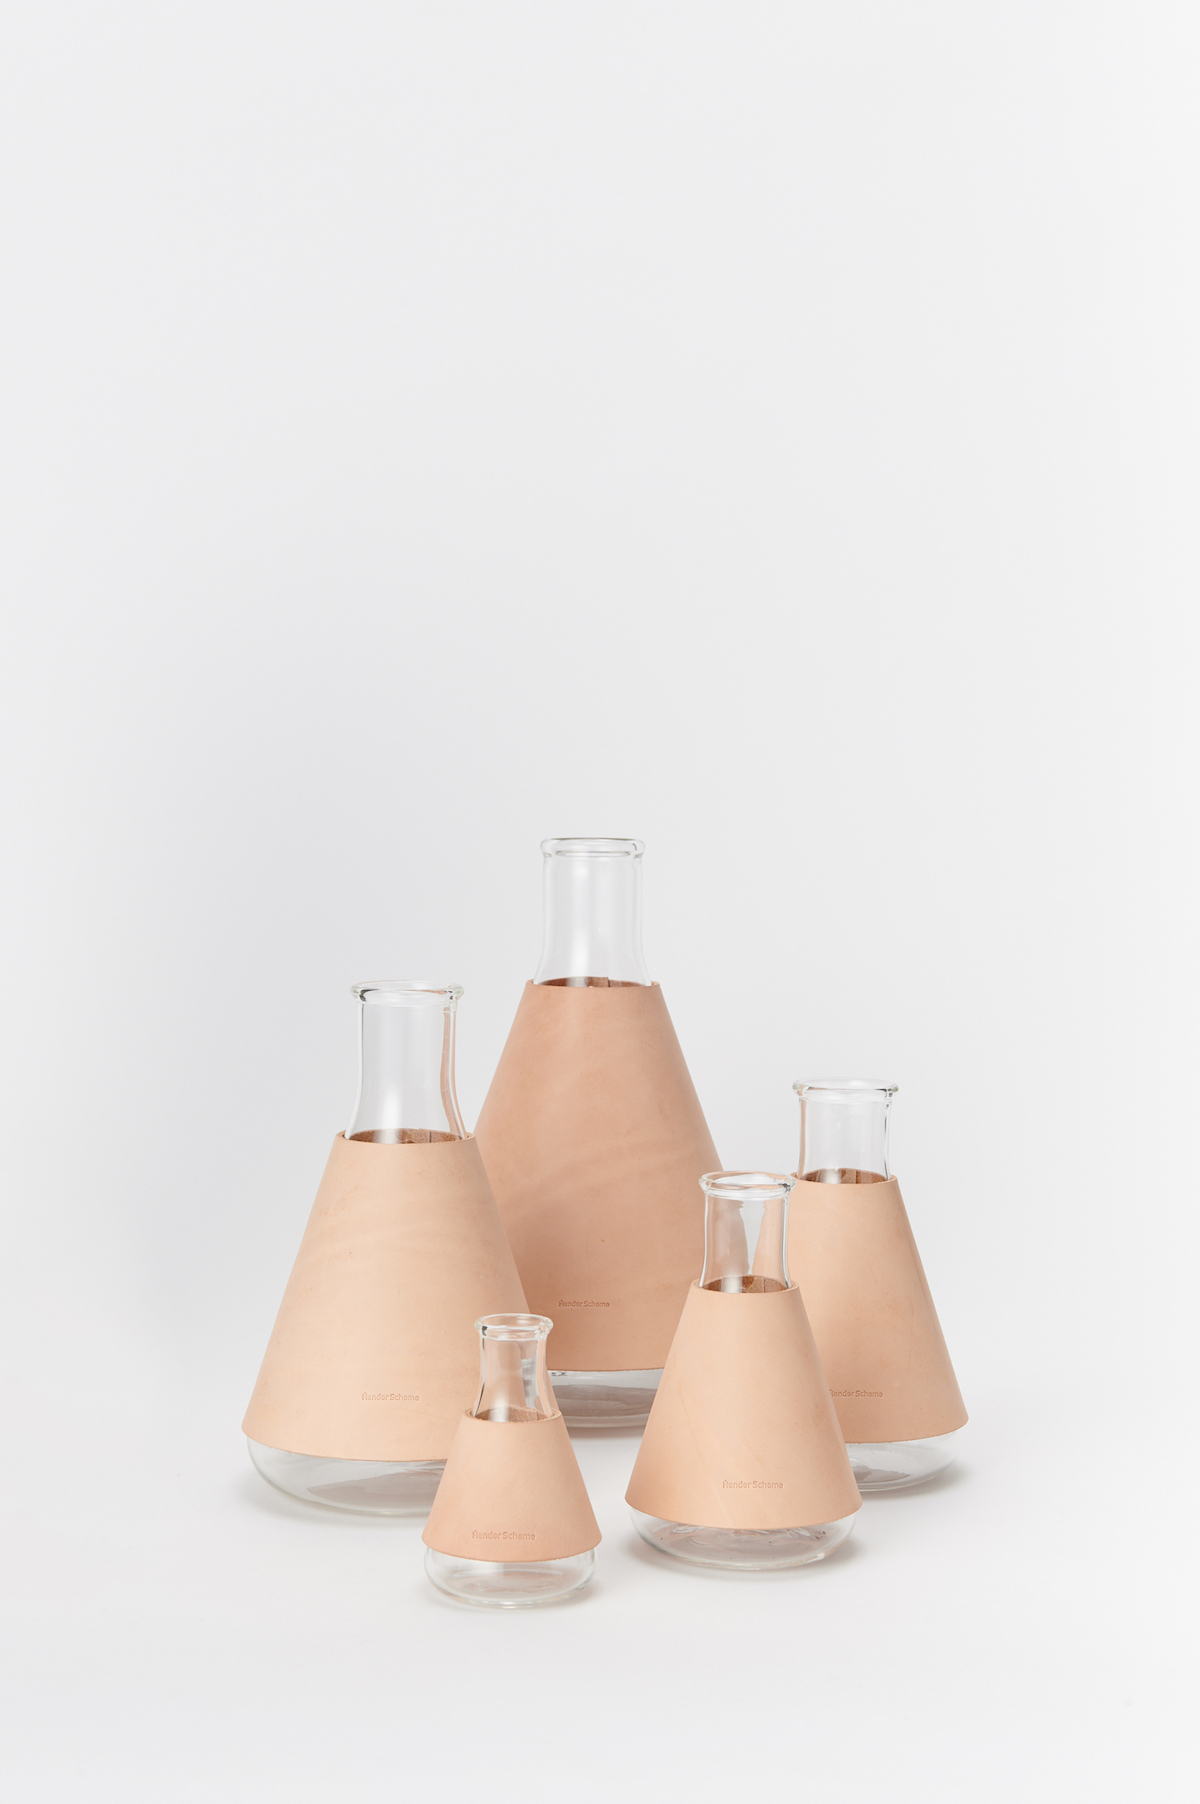 Hender Scheme – science vase:化瓶- 「 Erlenmeyer flask 300ml 」